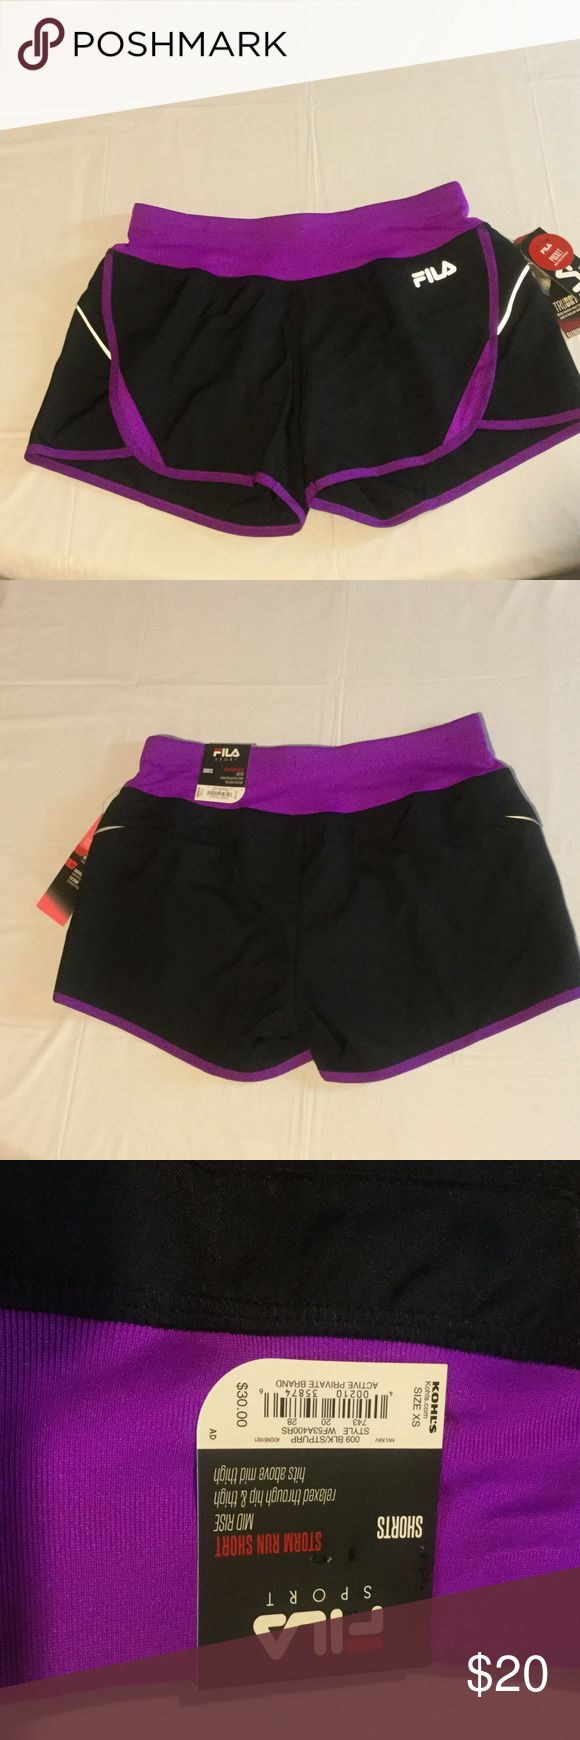 """FILA Sport Storm Running Short. Mid Rise FILA Sport Storm Run Short, Mid Rise, relaxed through hip and thigh, hits above mid thigh.  Size XS.  Pocket to hold essentials.  Panties attached.  Elastic and draw string waist.  TruDry, wicks moisture away from the body to keep you comfortable. Reflective for added visibility.  Stretch Fabric and Flat Seams.  Made in Indonesia of Polyester.  Washer and dryer safe.  14"""" waist seam to seam, FILA Shorts #runningessentials"""